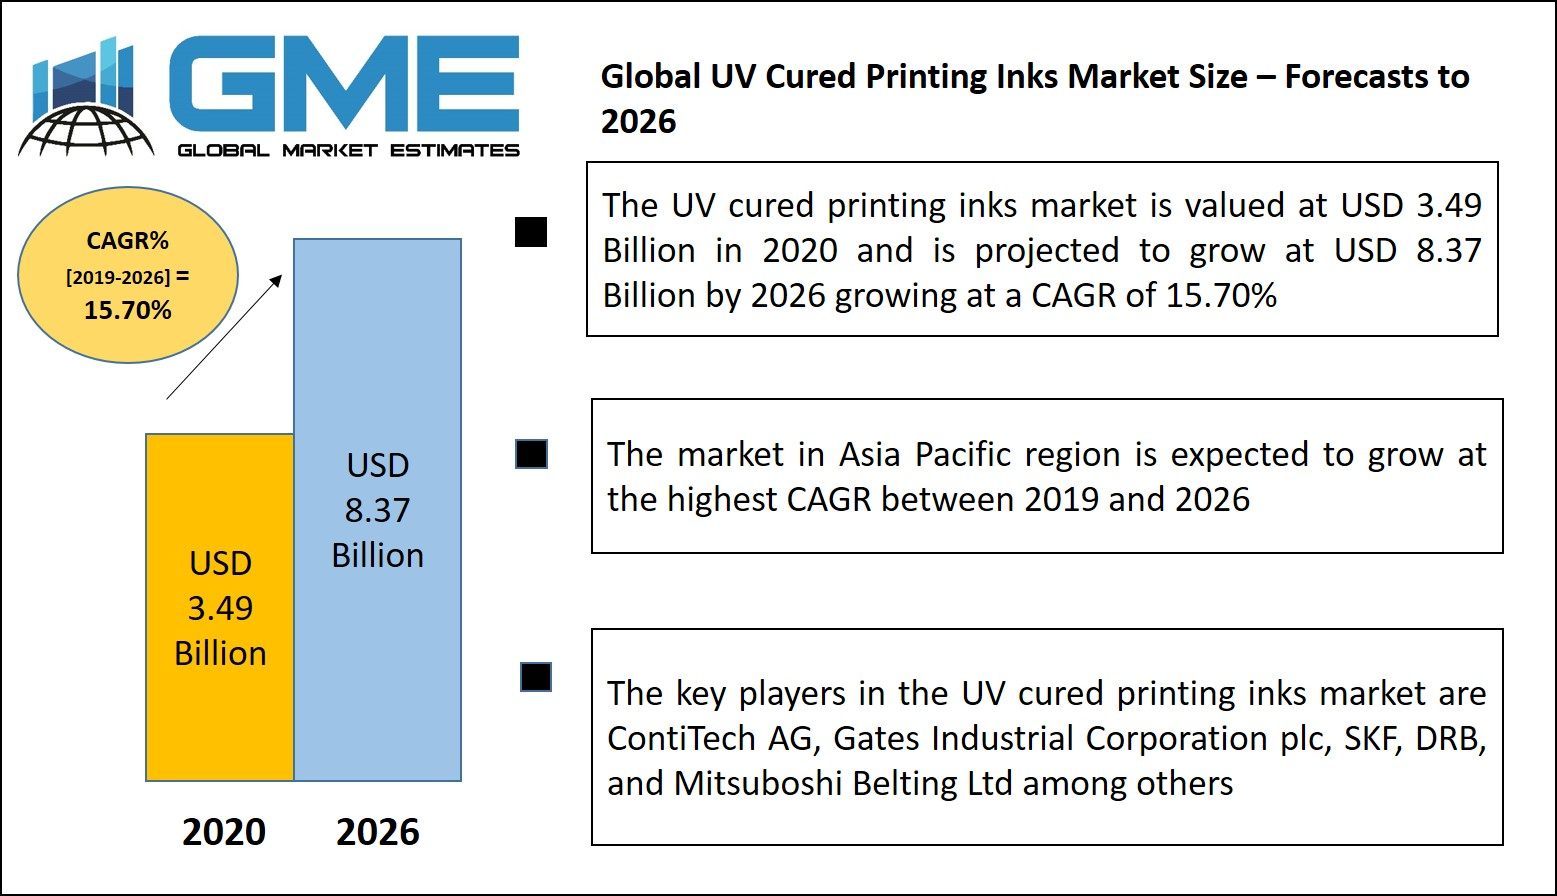 Global UV Cured Printing Inks Market